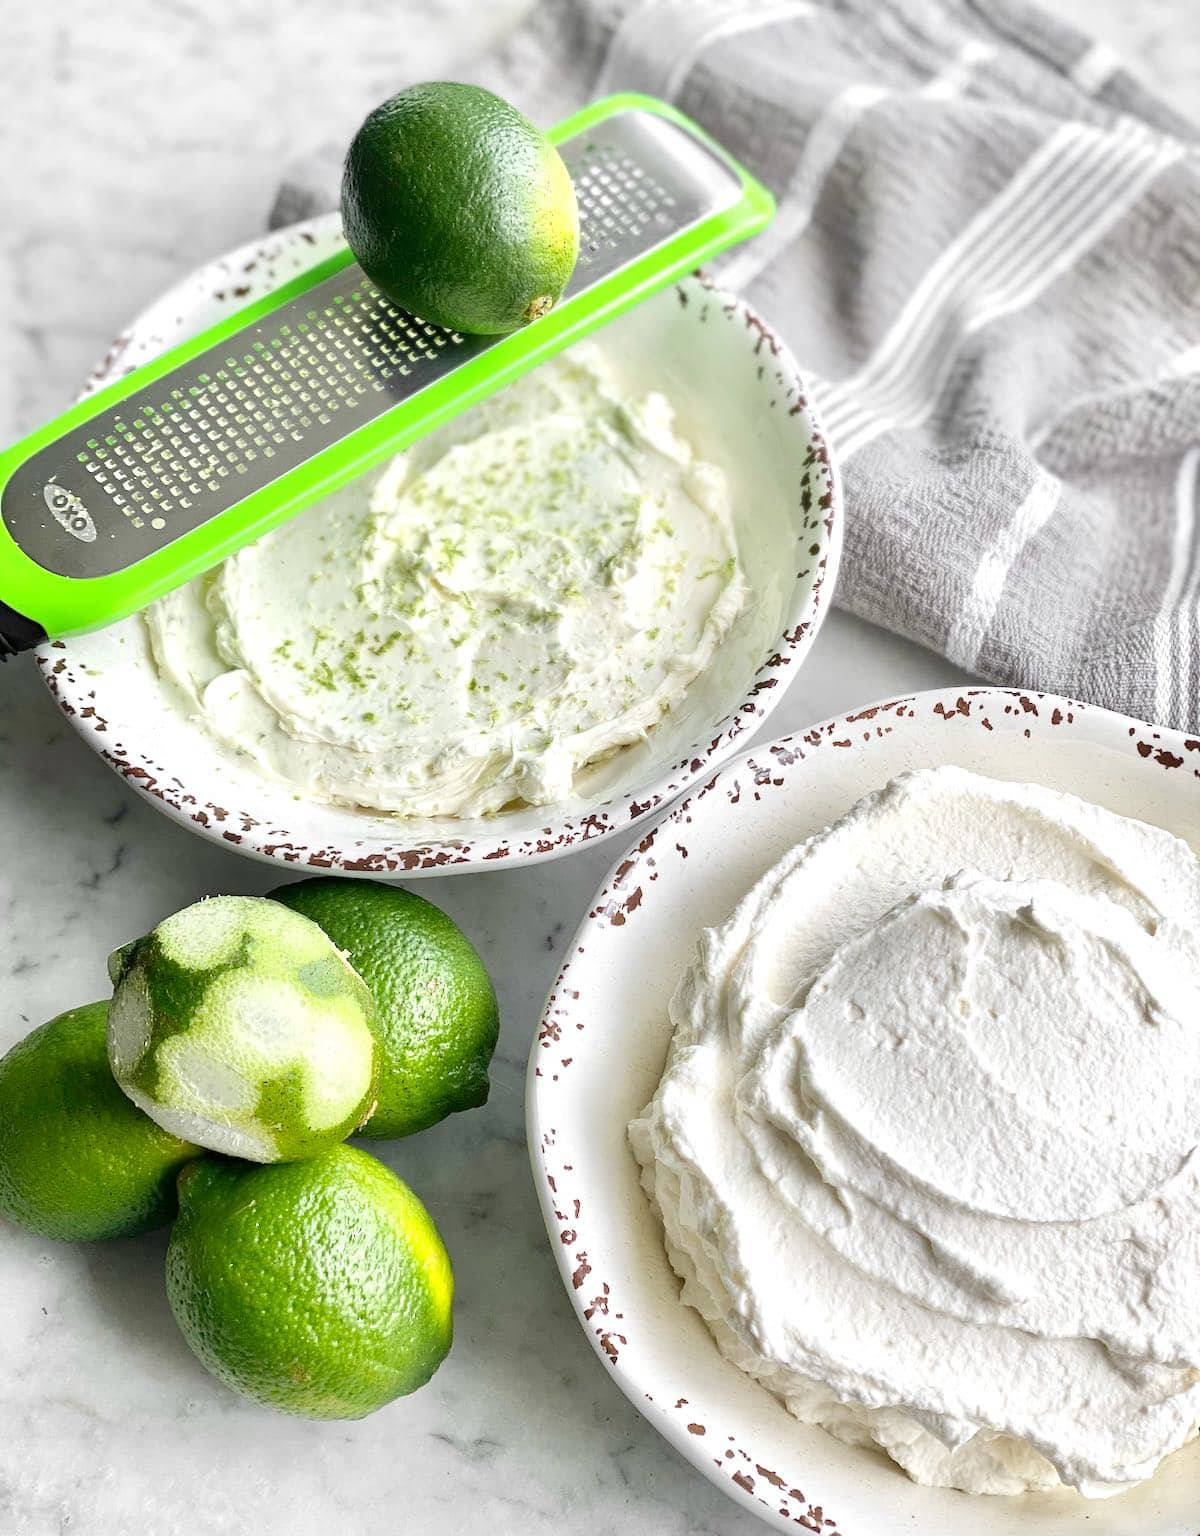 zesting limes into the cream cheese mixture.